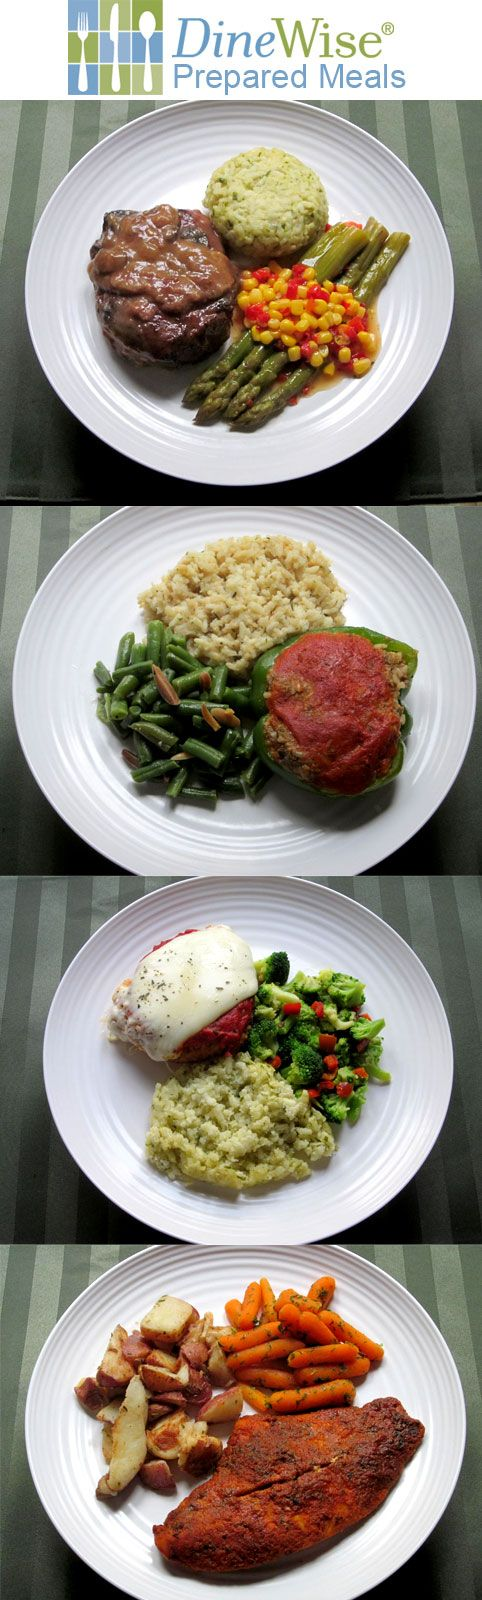 Four Delicious DineWise Prepared Meals. http://www.prepared-meals.com/Meal-Delivery-Services/DineWise-Reviews.html